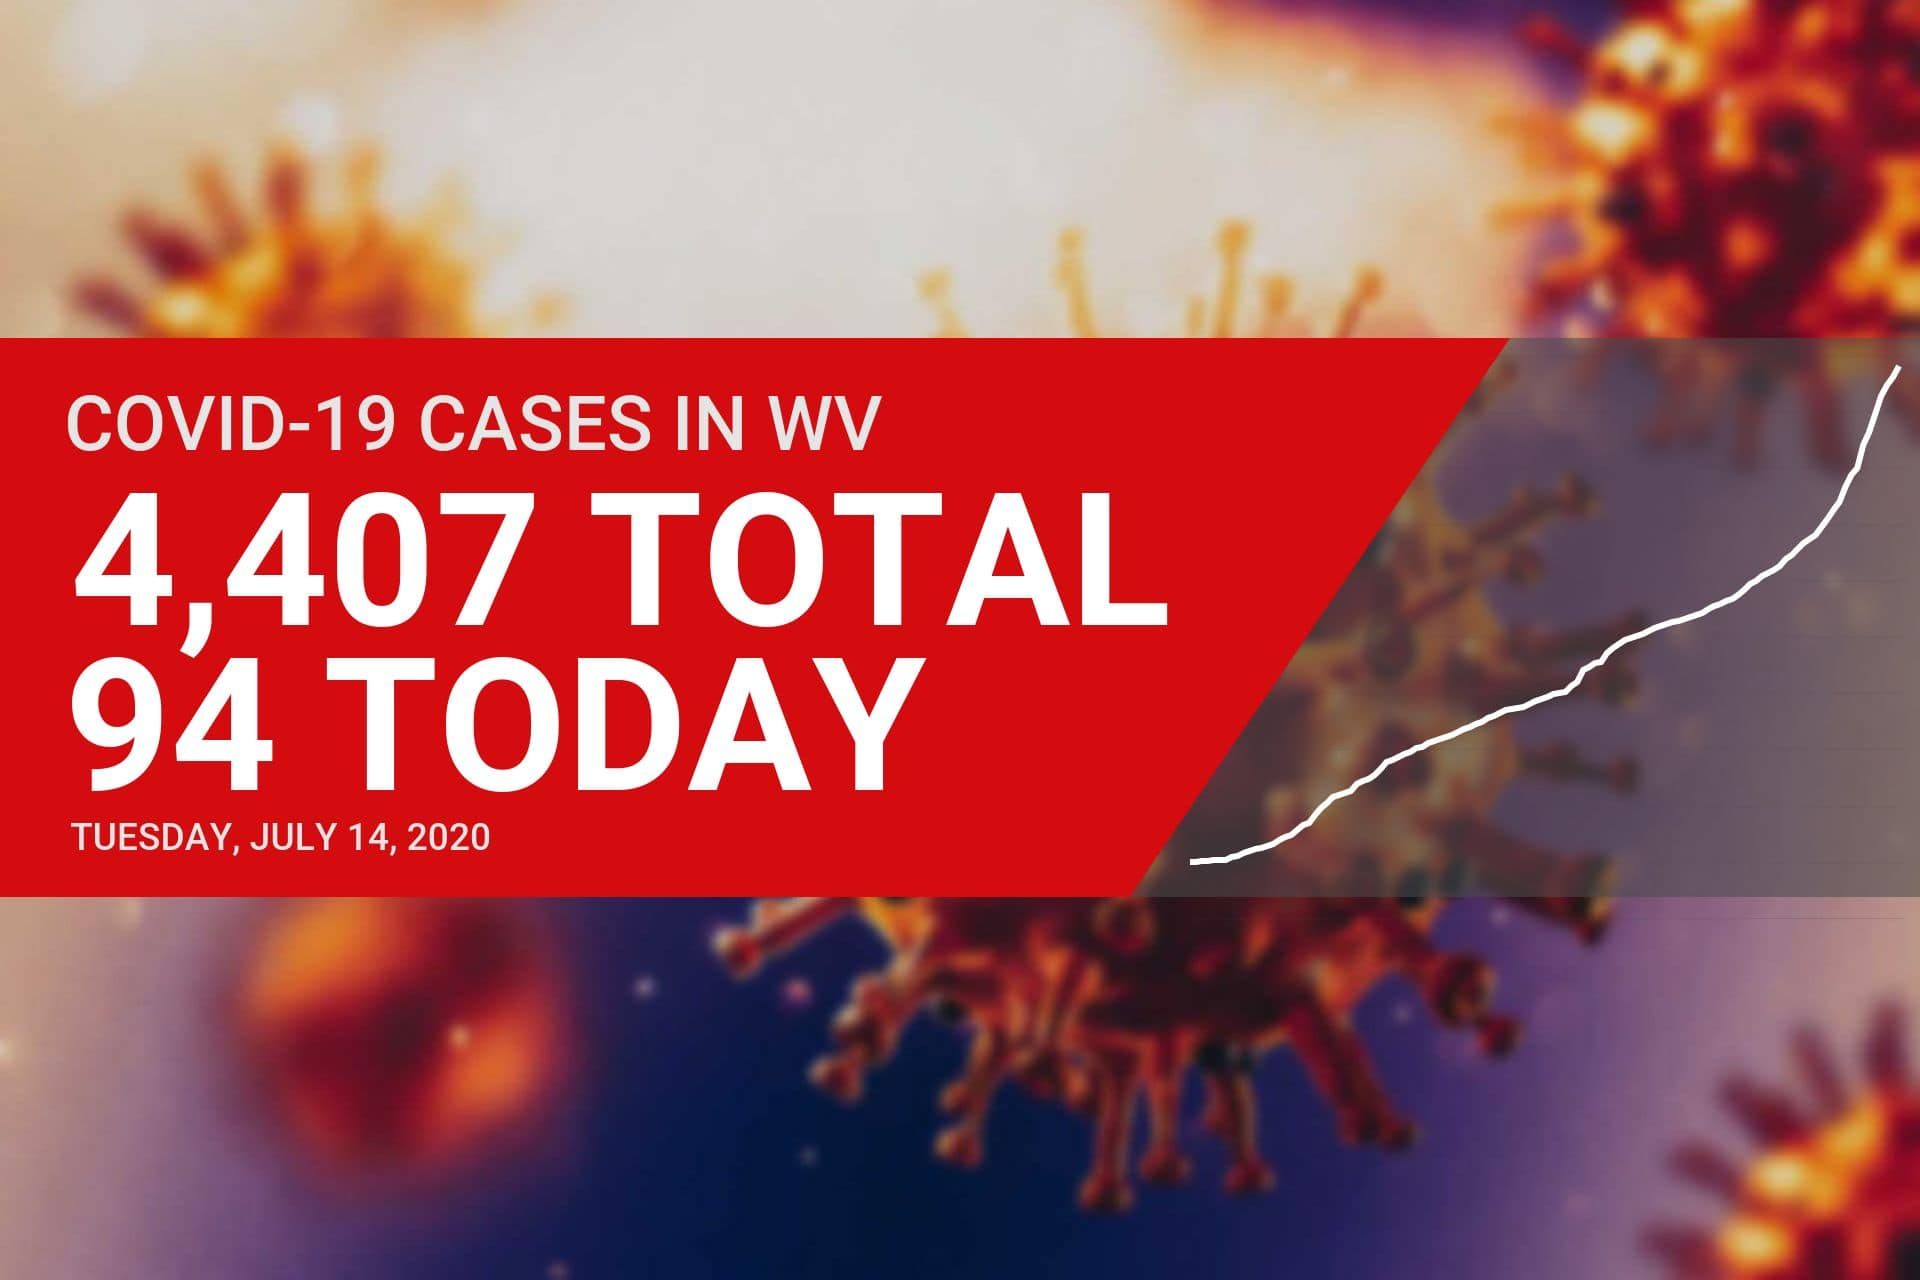 A total of 94 new cases of COVID-19 reported in West Virginia on Tuesday